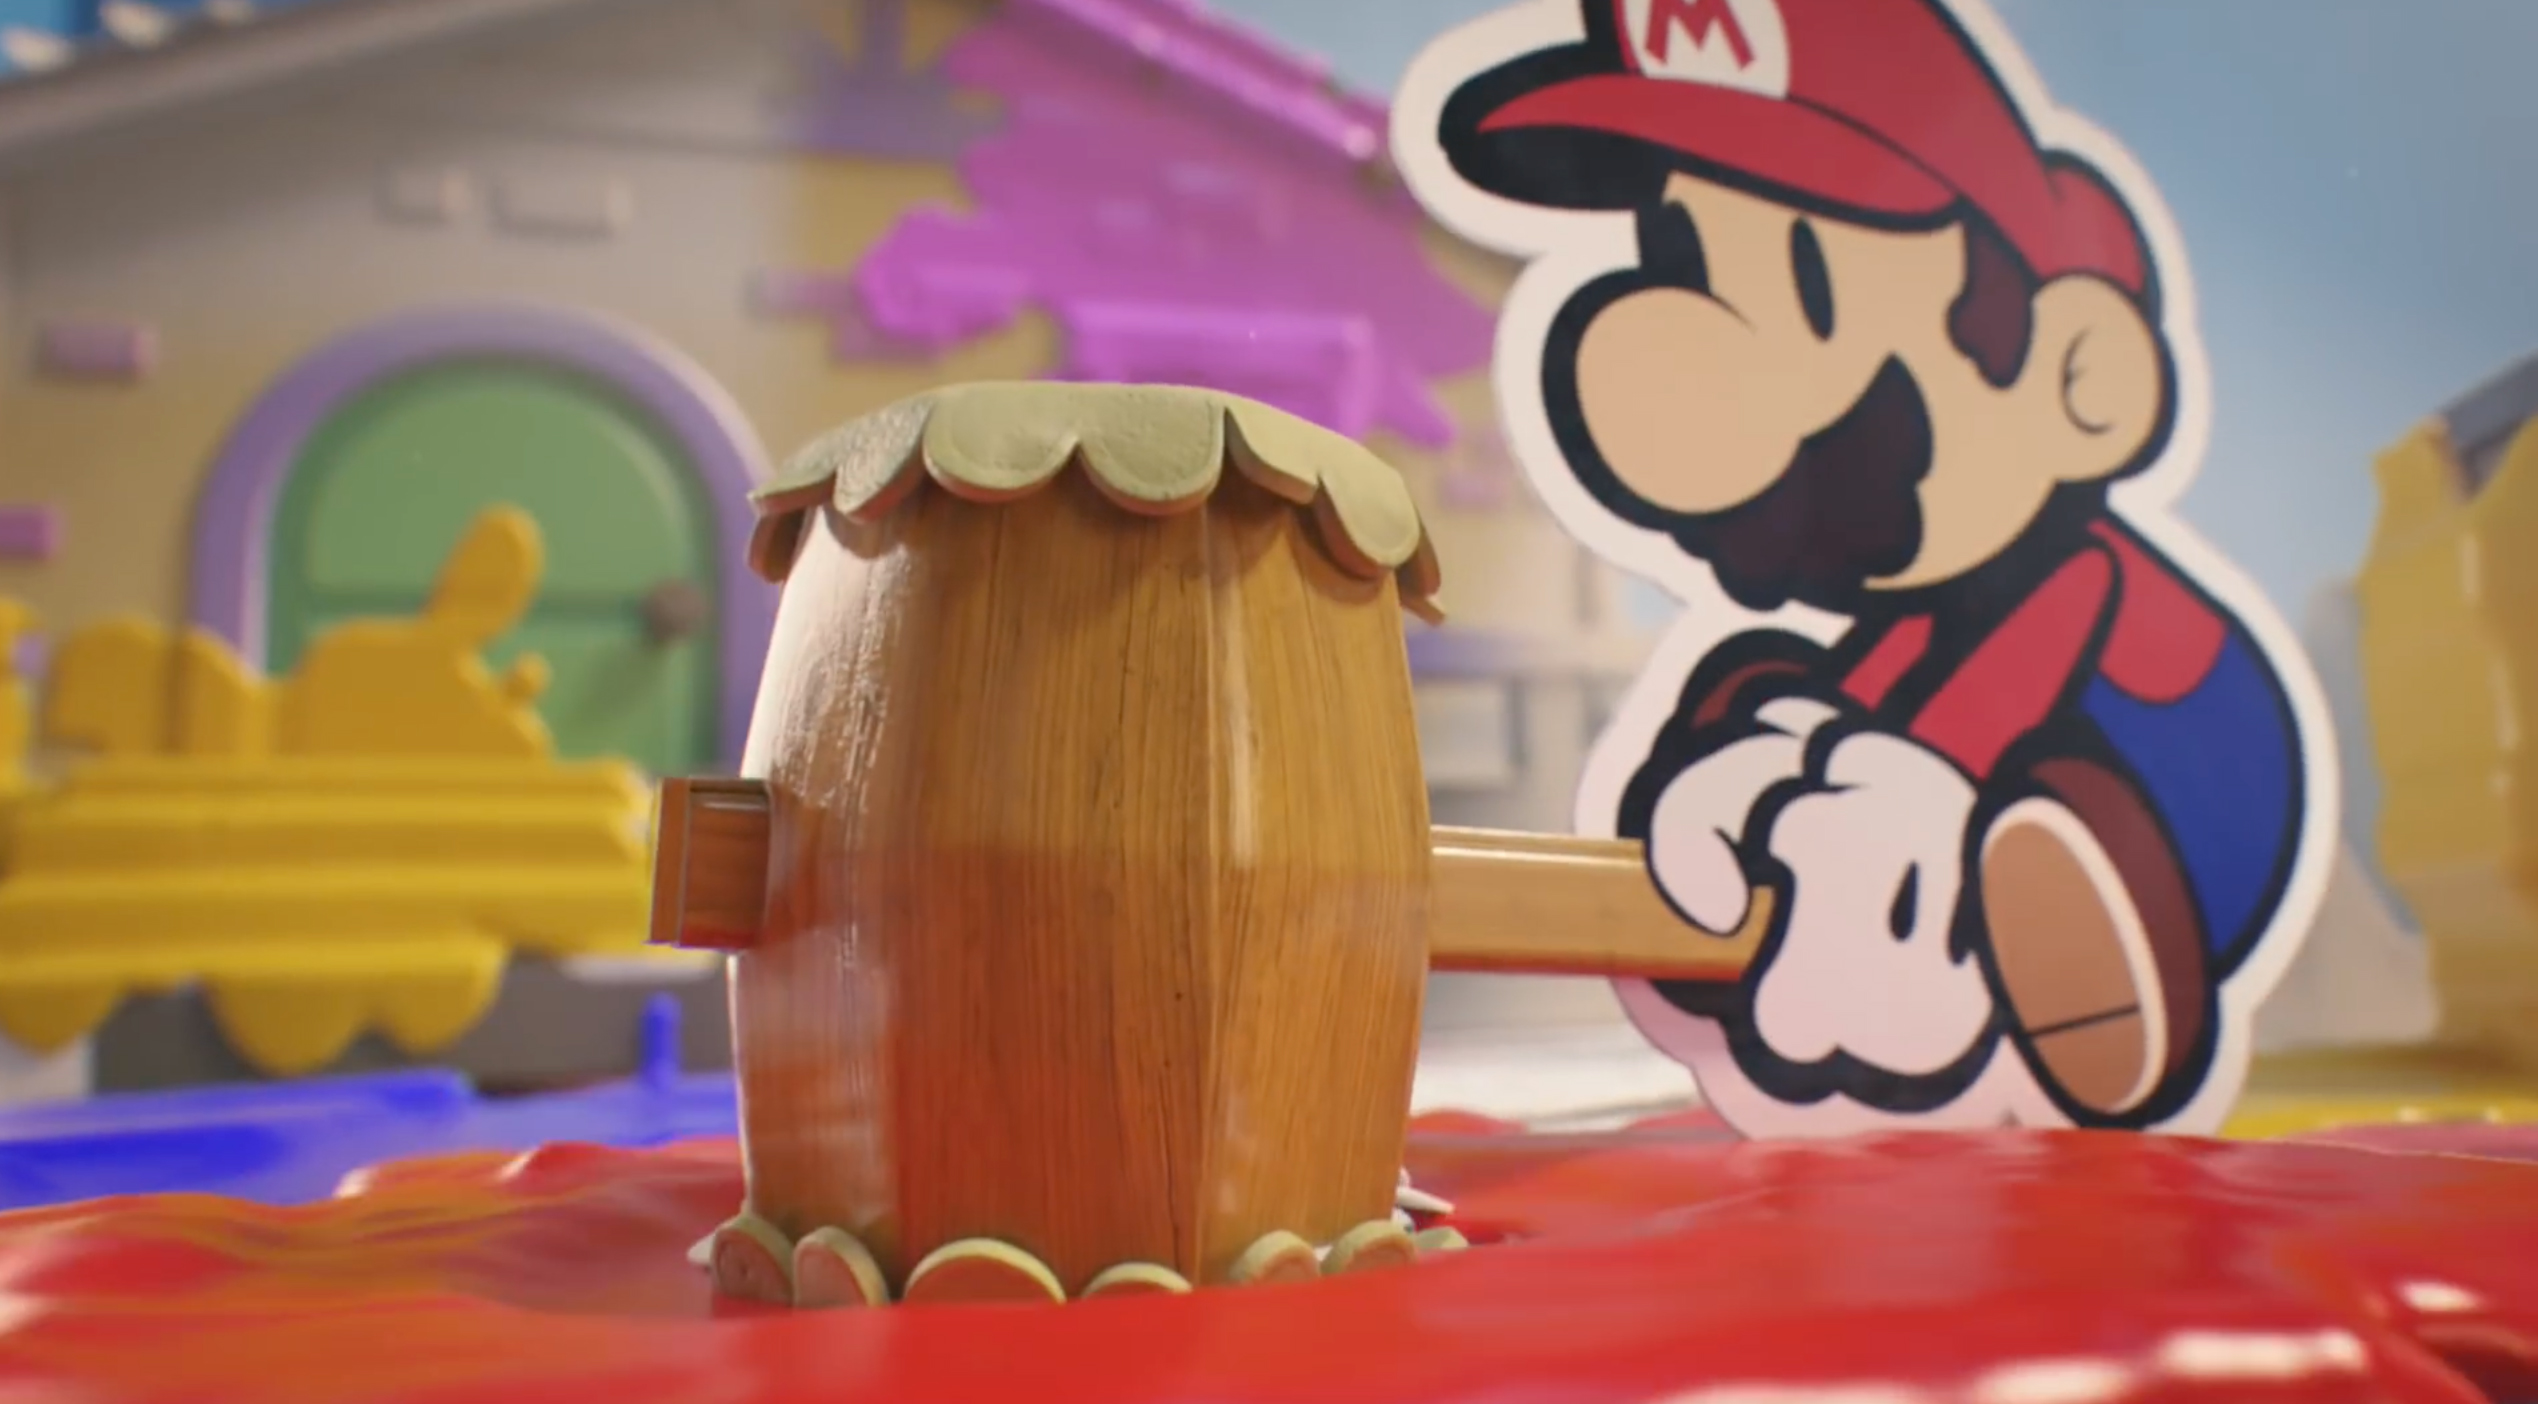 Review: Paper Mario: Color Splash